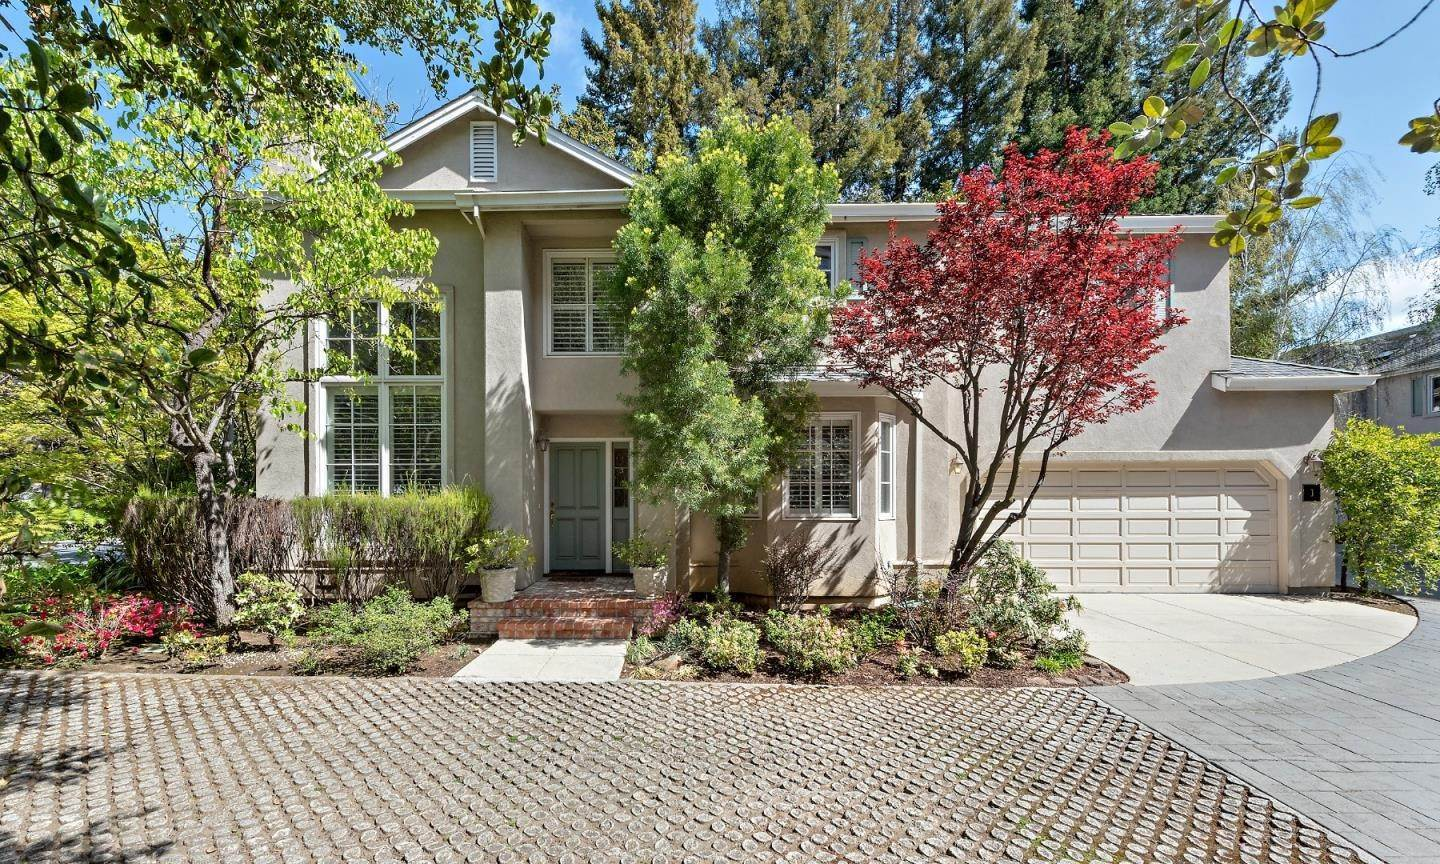 townhouses for Sale at 1 Daisy Lane Menlo Park, California 94025 United States